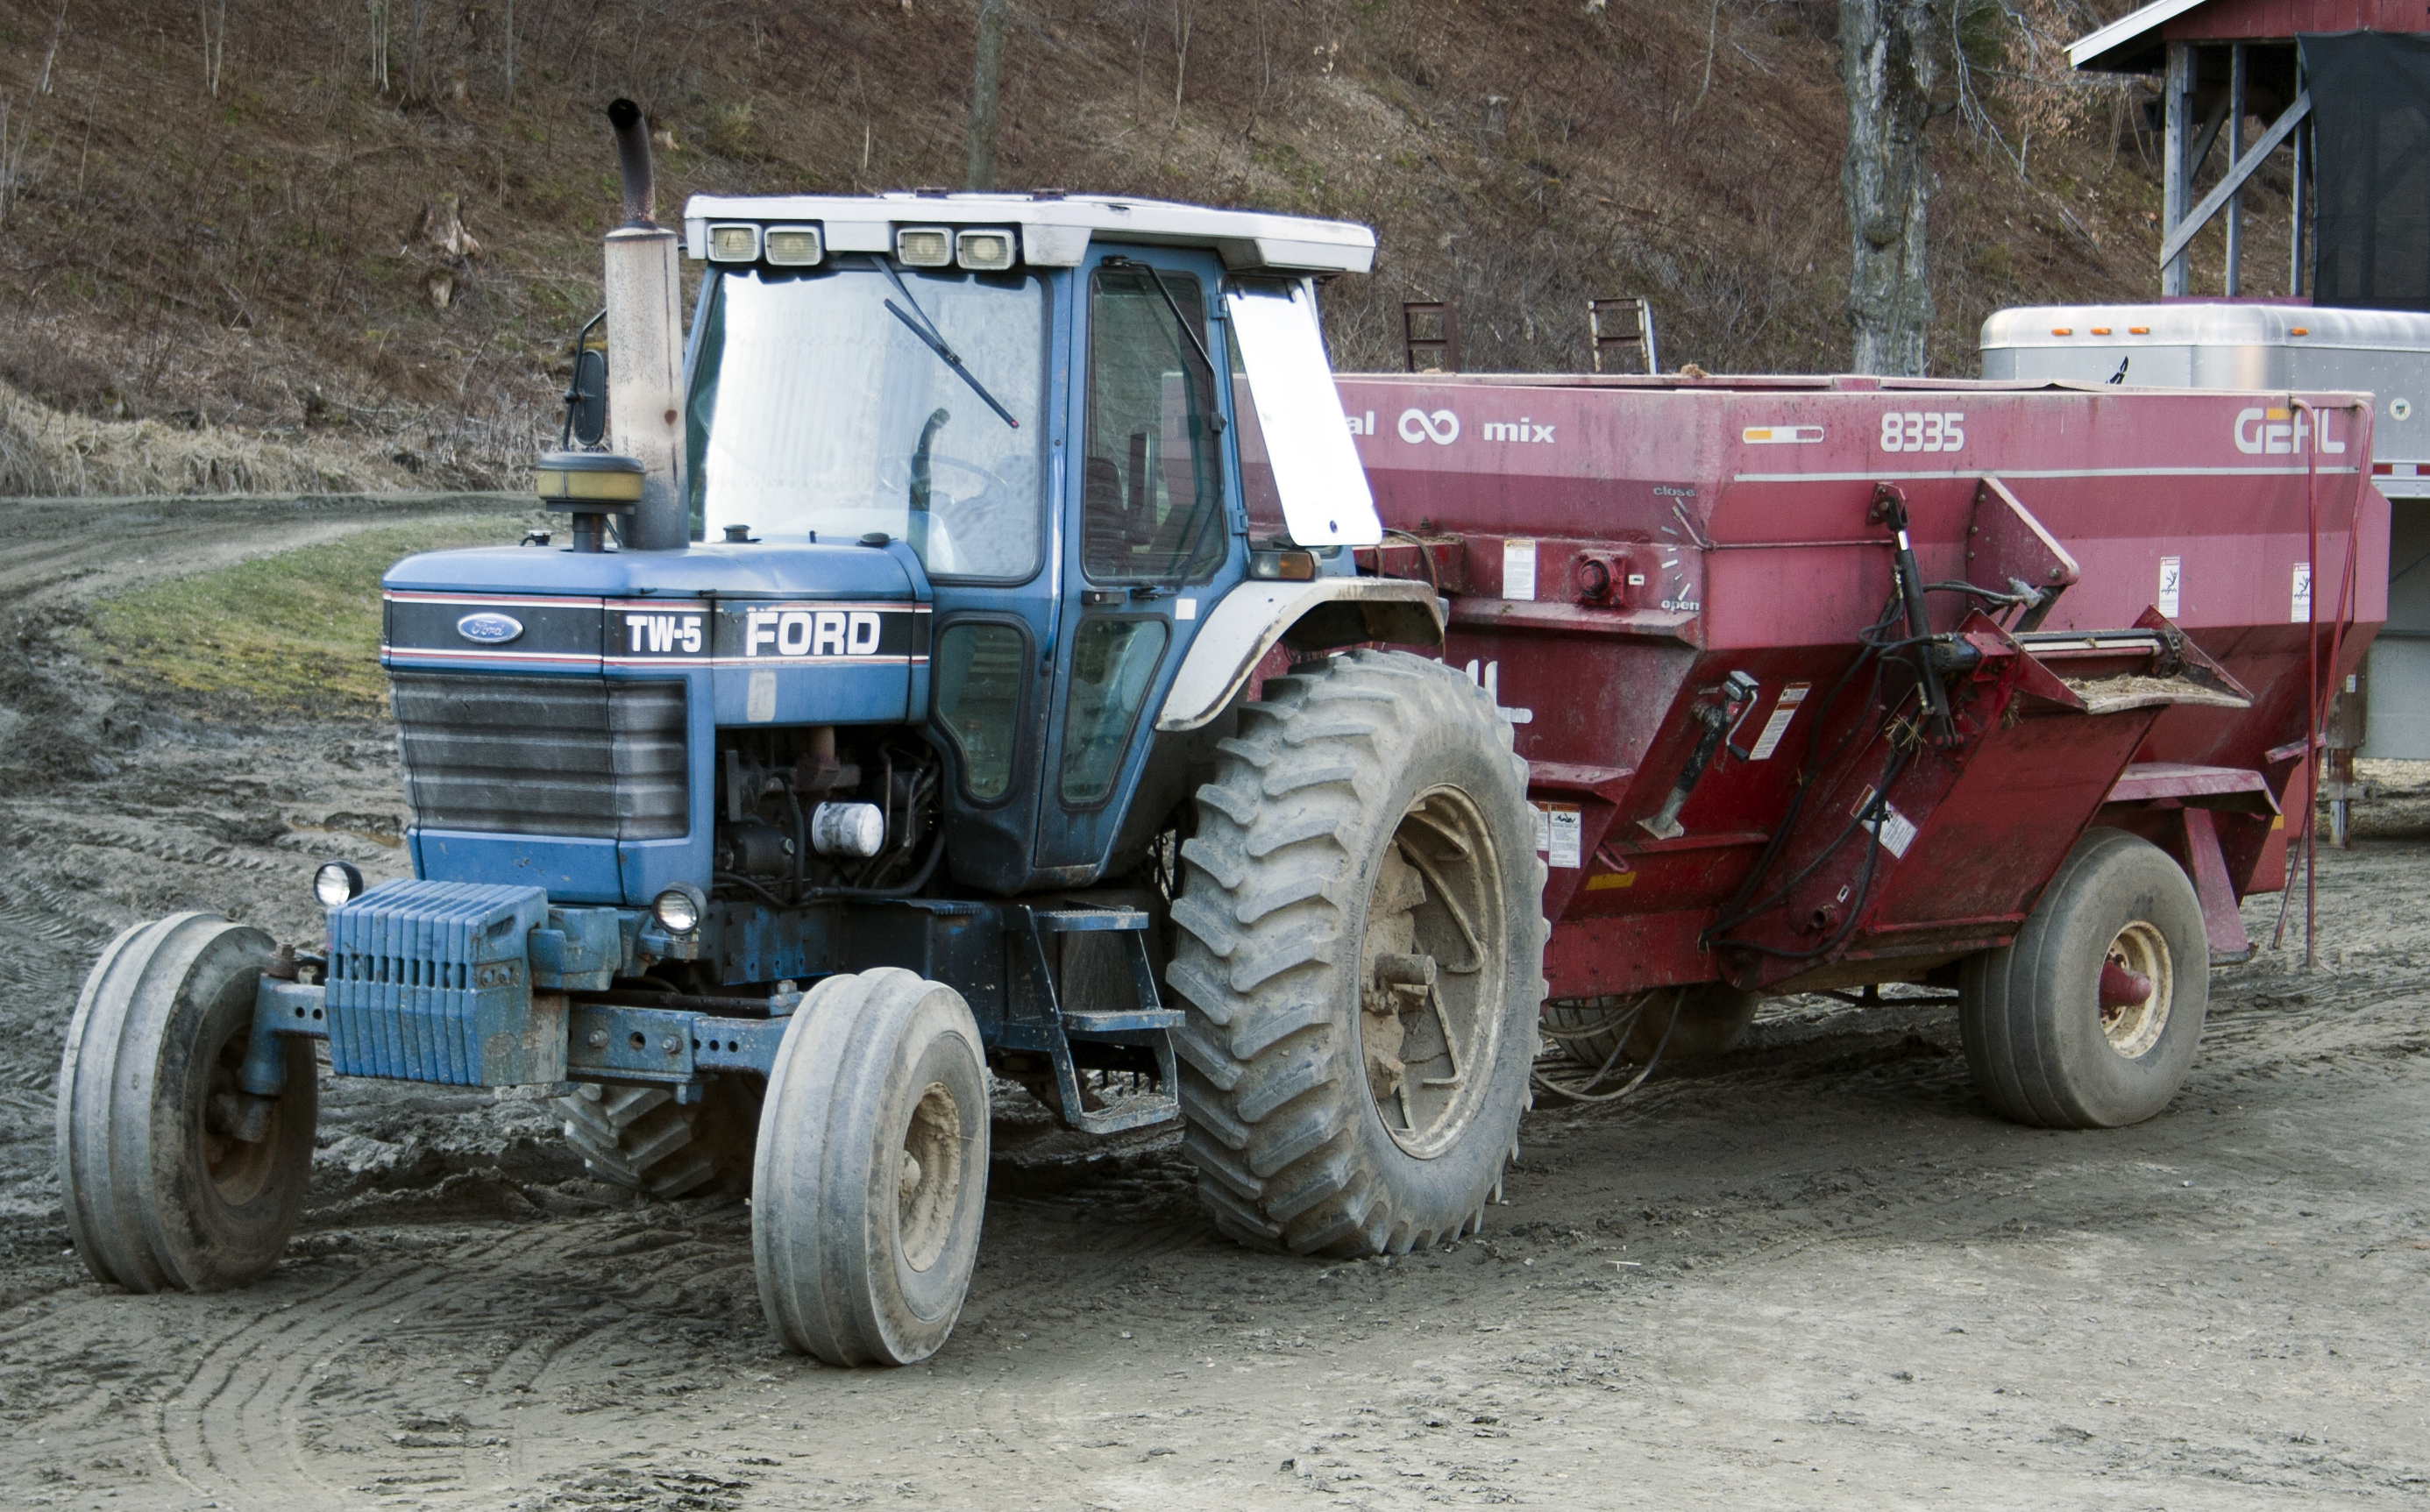 File:Ford TW-5 traktor.jpg - Wikimedia Commons